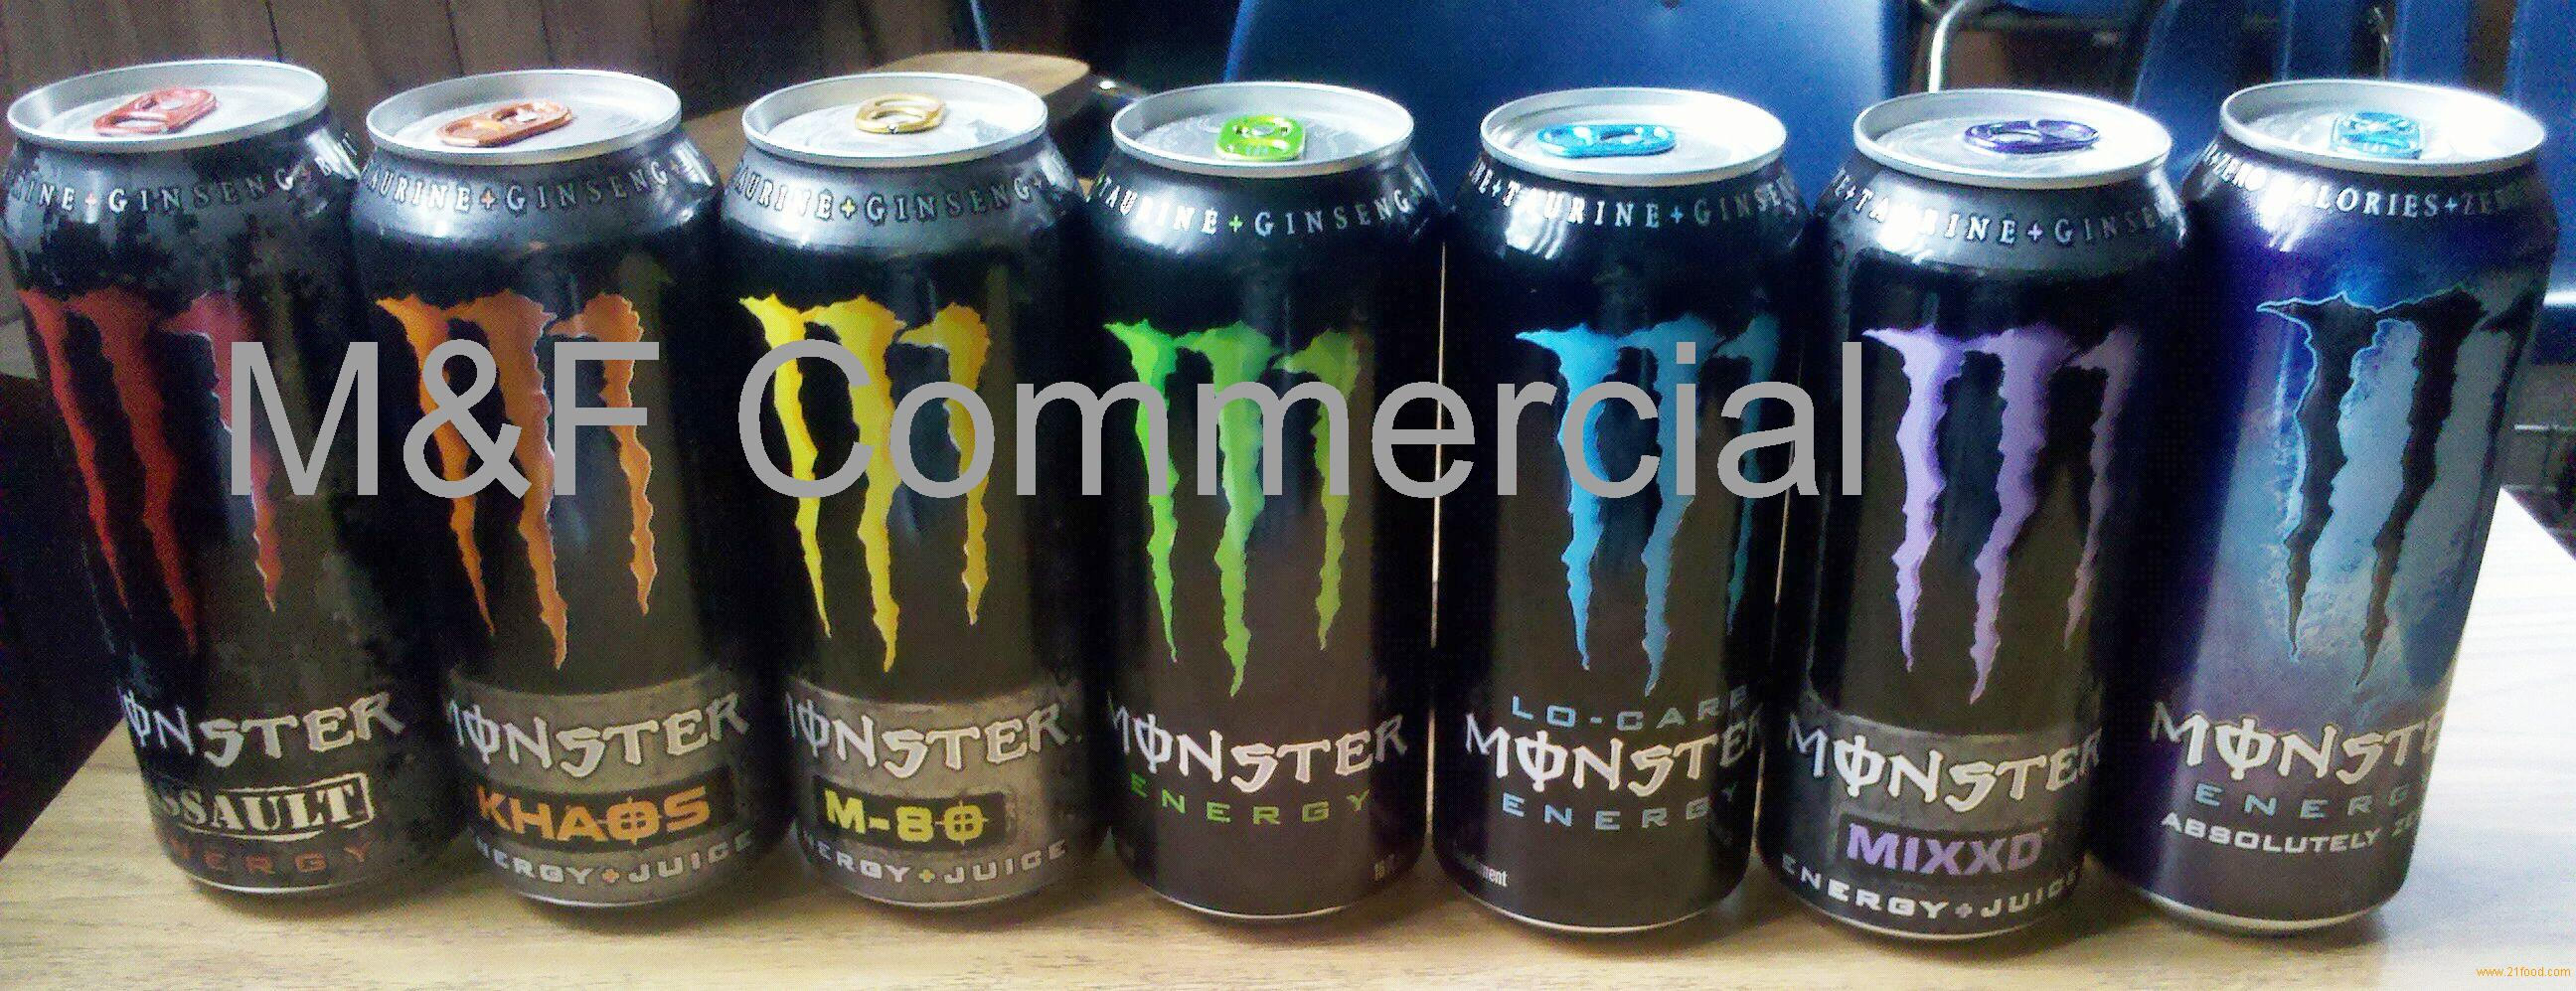 monster energy drink 500ml can products germany monster. Black Bedroom Furniture Sets. Home Design Ideas